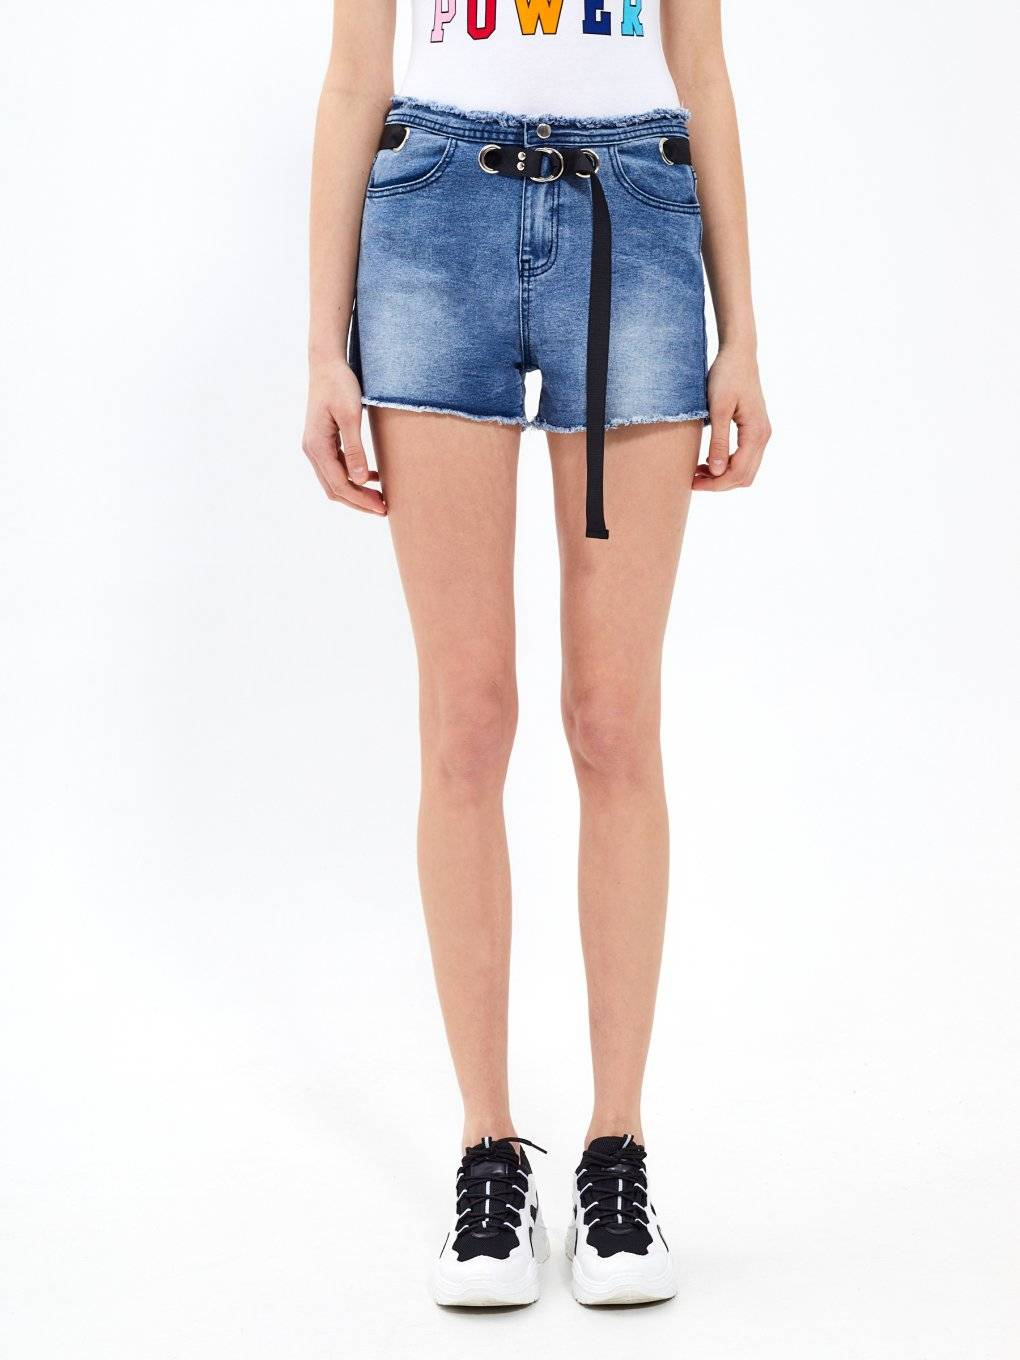 Denim shorts with contrast belt